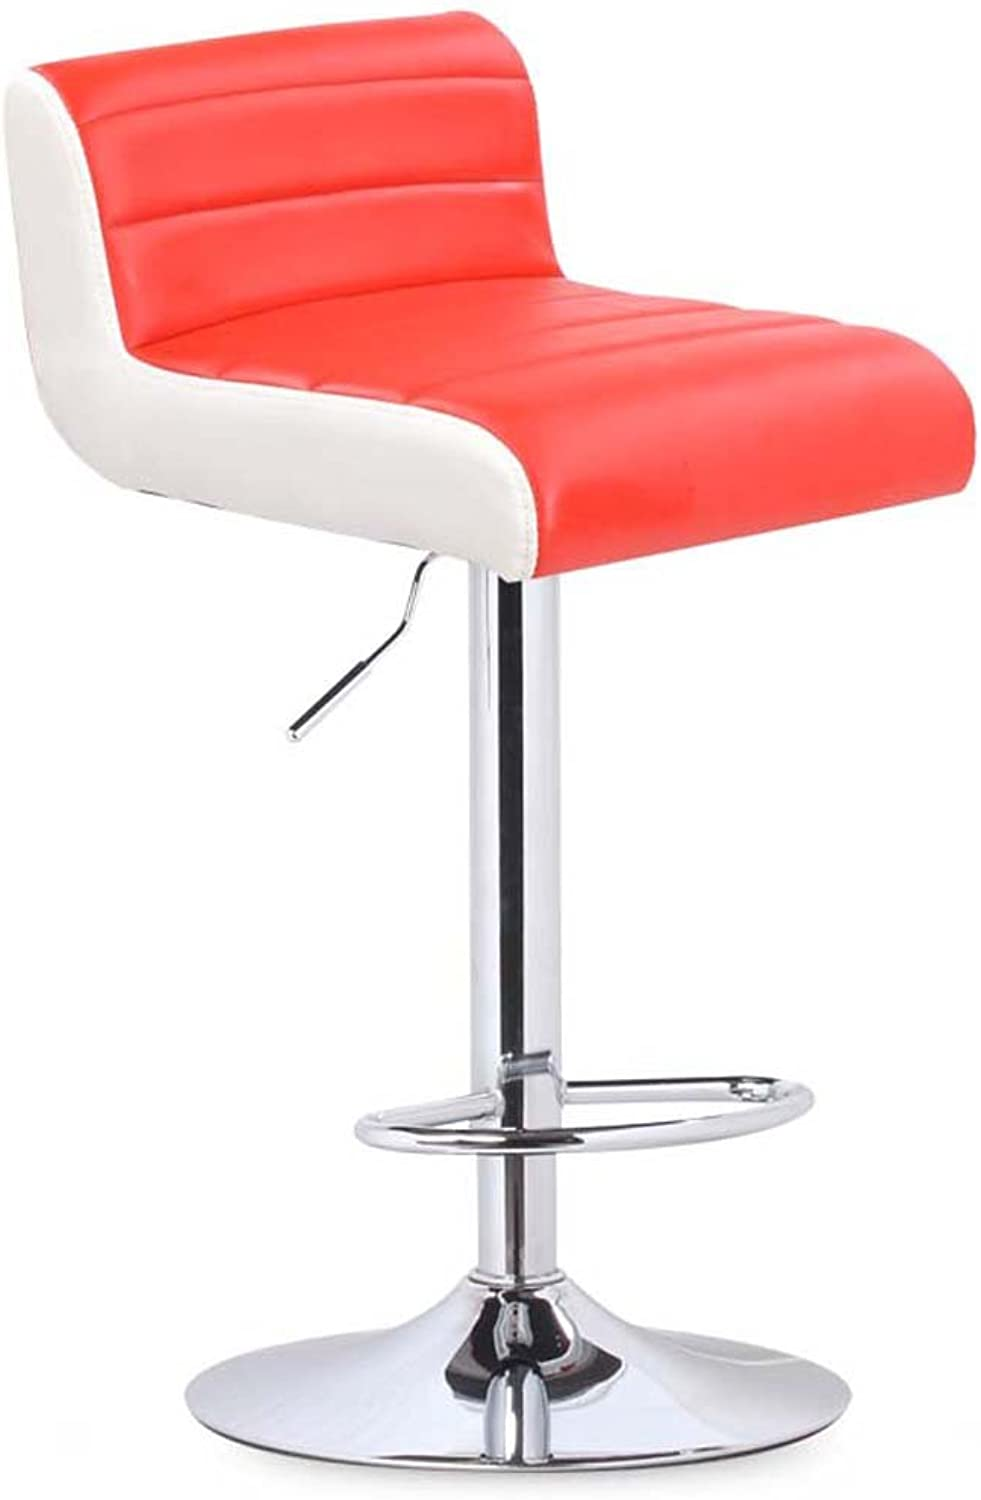 GSHWJS Bar Chair Chair Lift redating Bar Chair backrest Stool Put The Stool (color   Red)